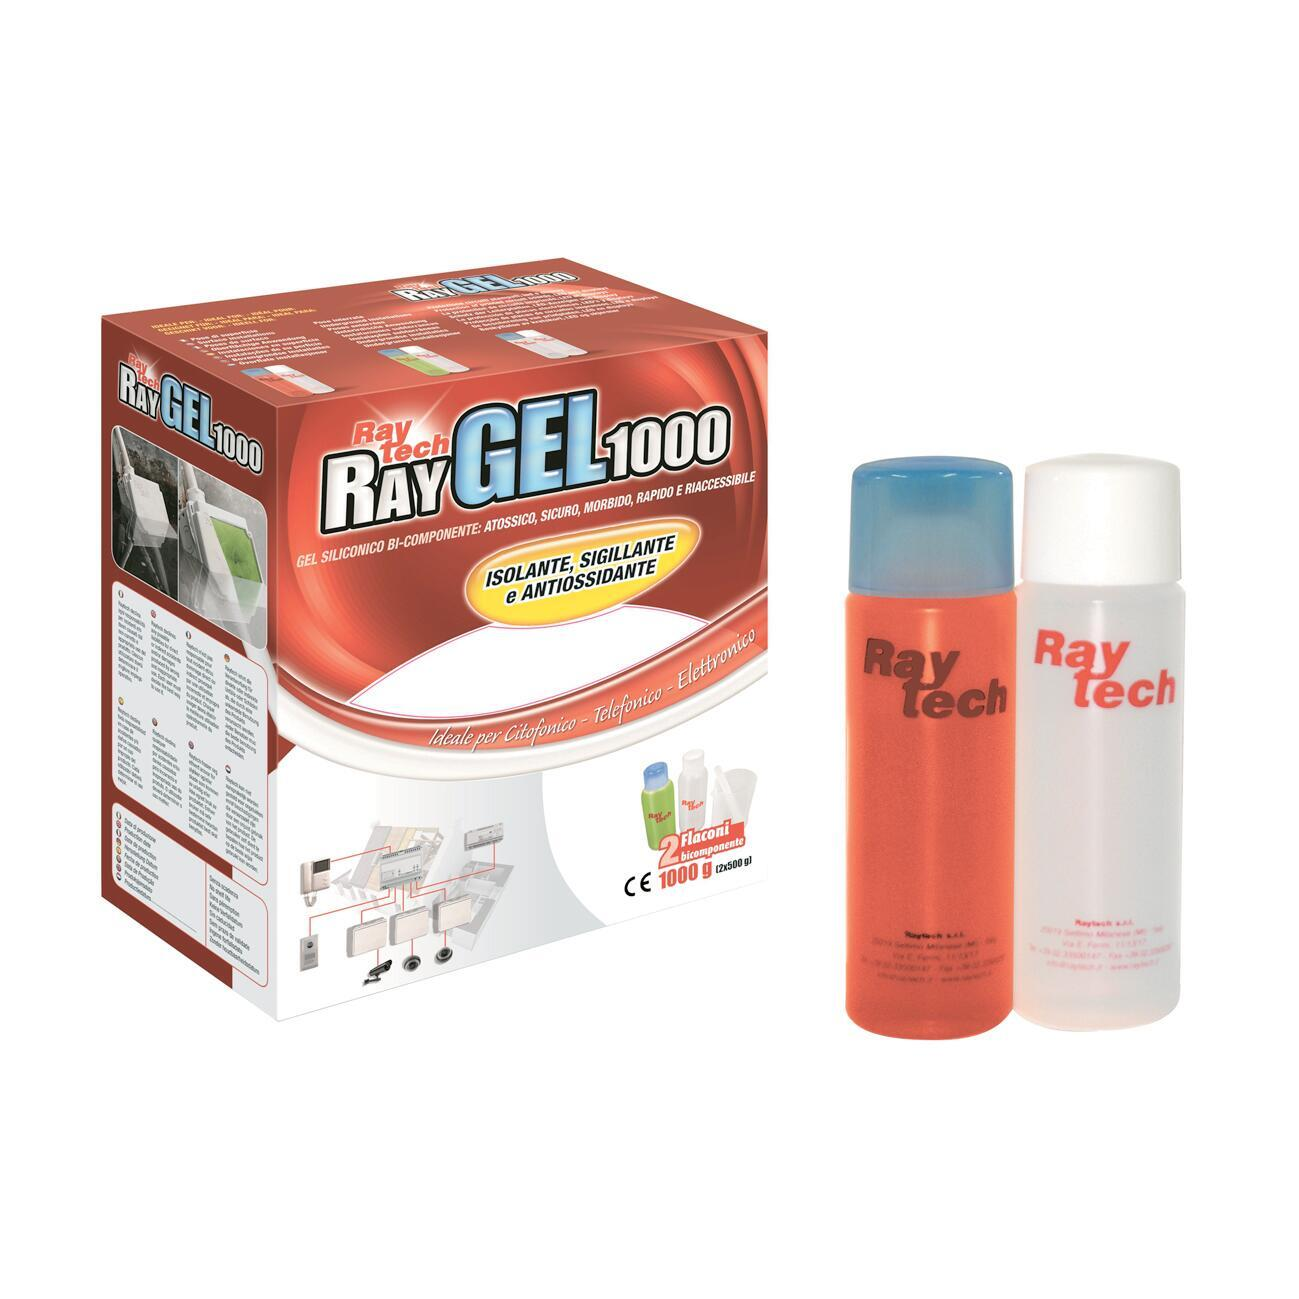 Gel bicomponente a tenuta stagna RAYTECH Ray 100 ml - 1